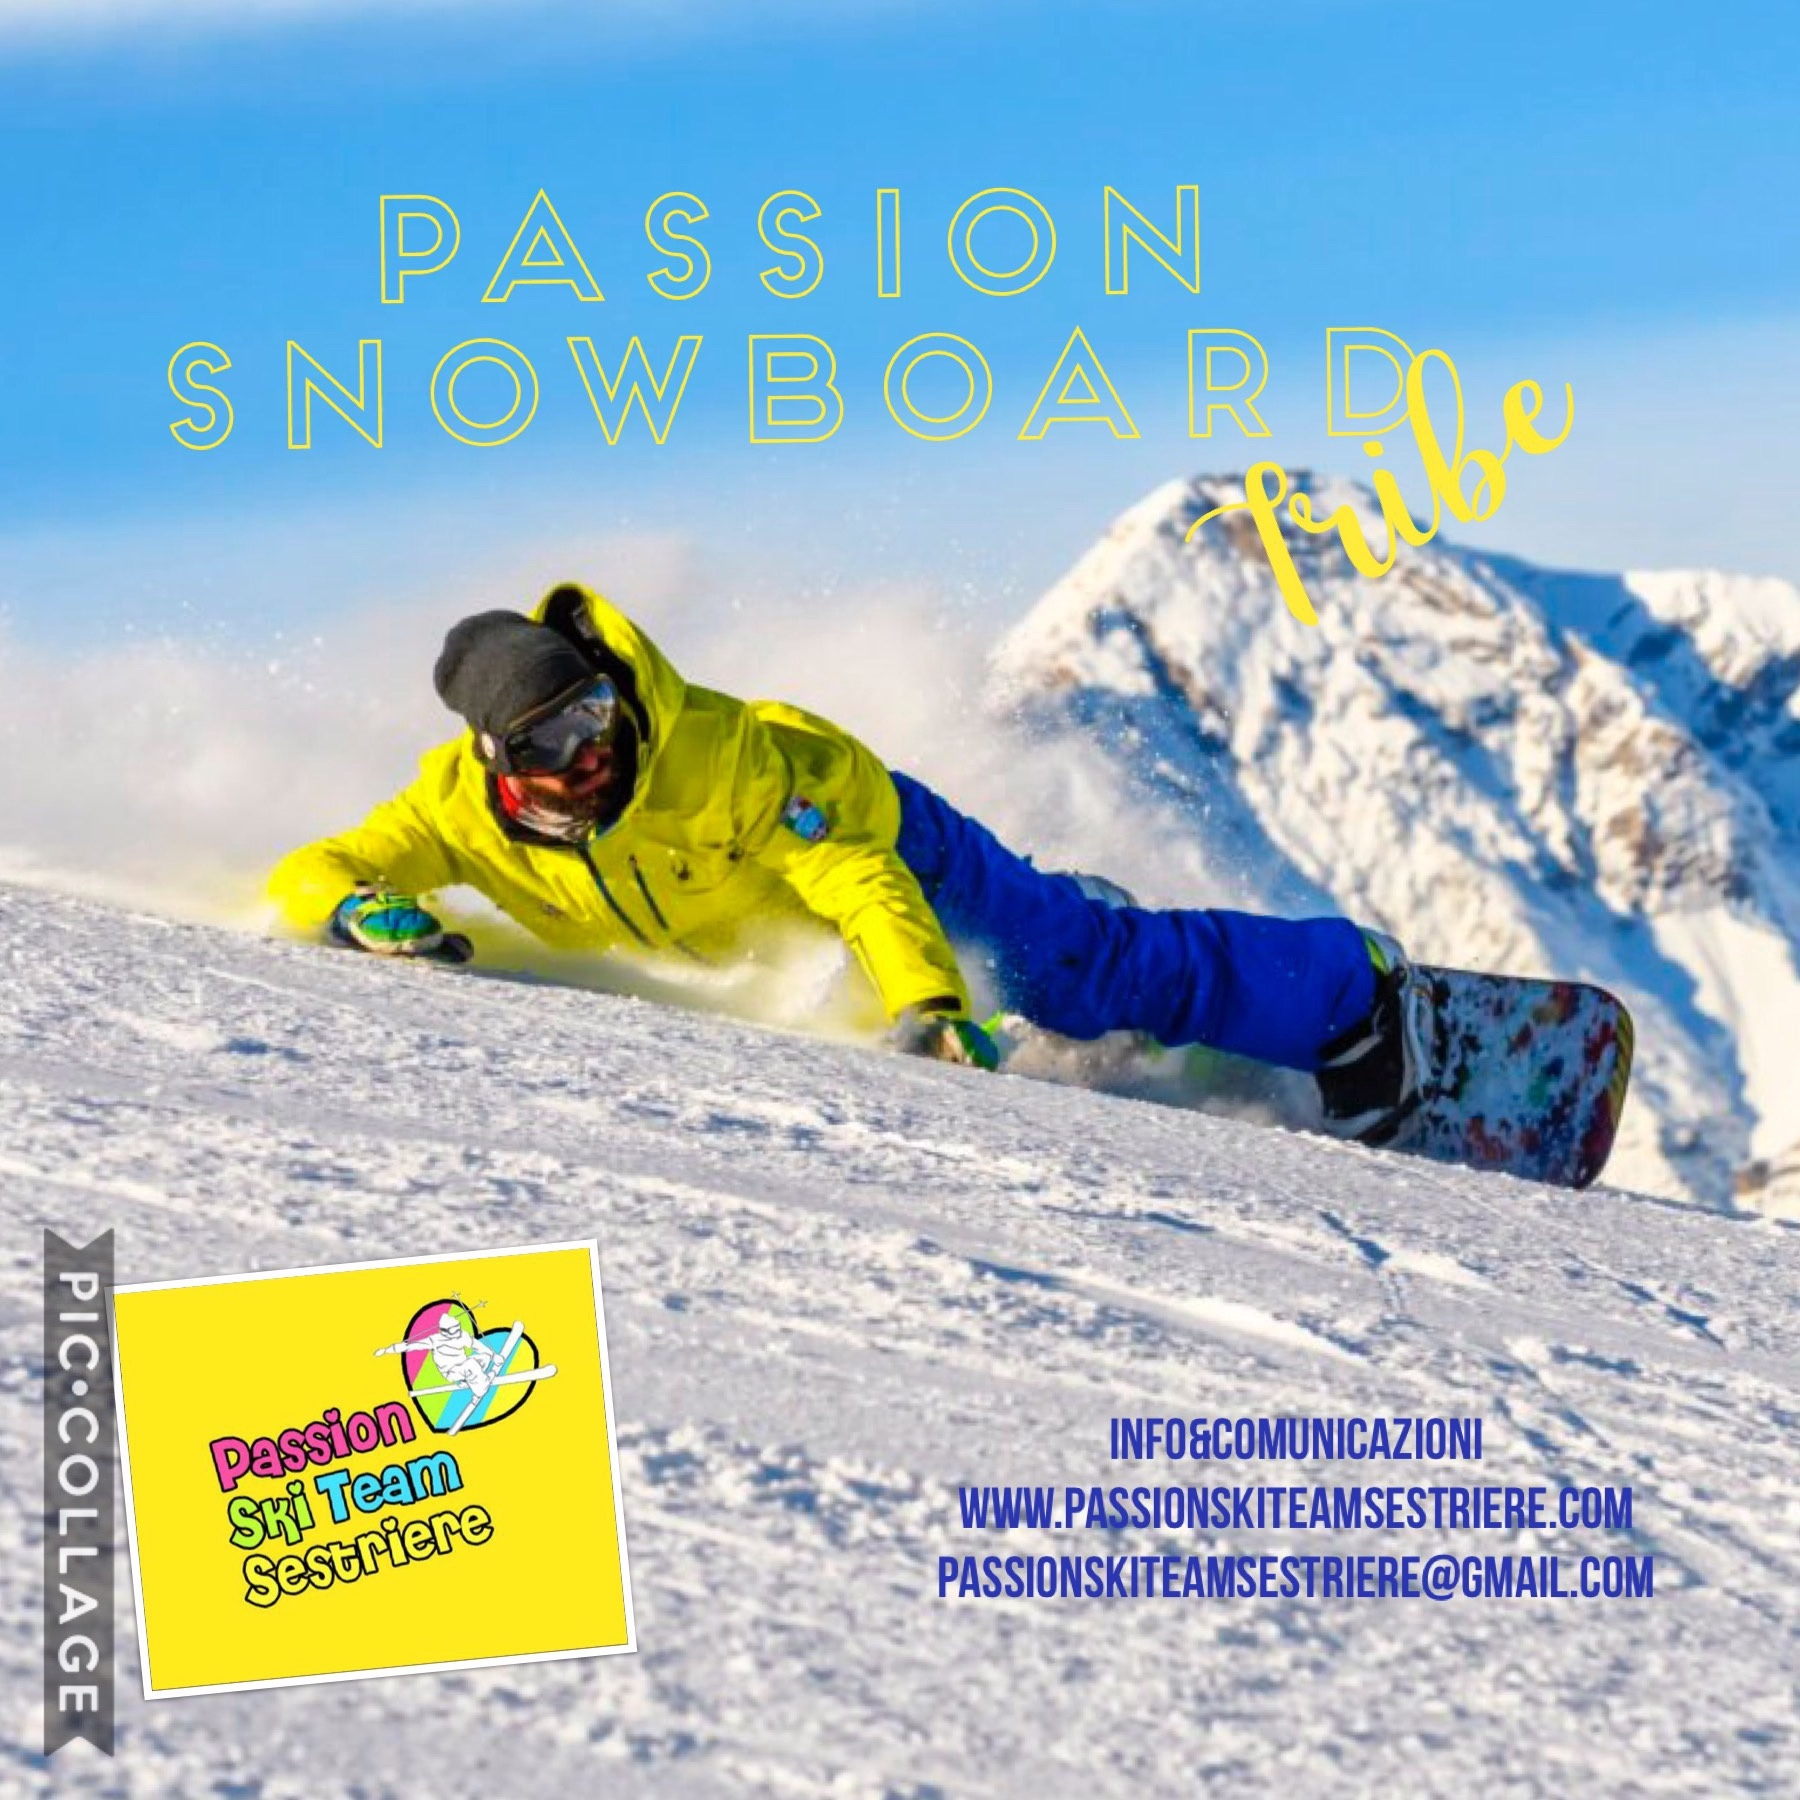 Passion Snowboard Tribe!